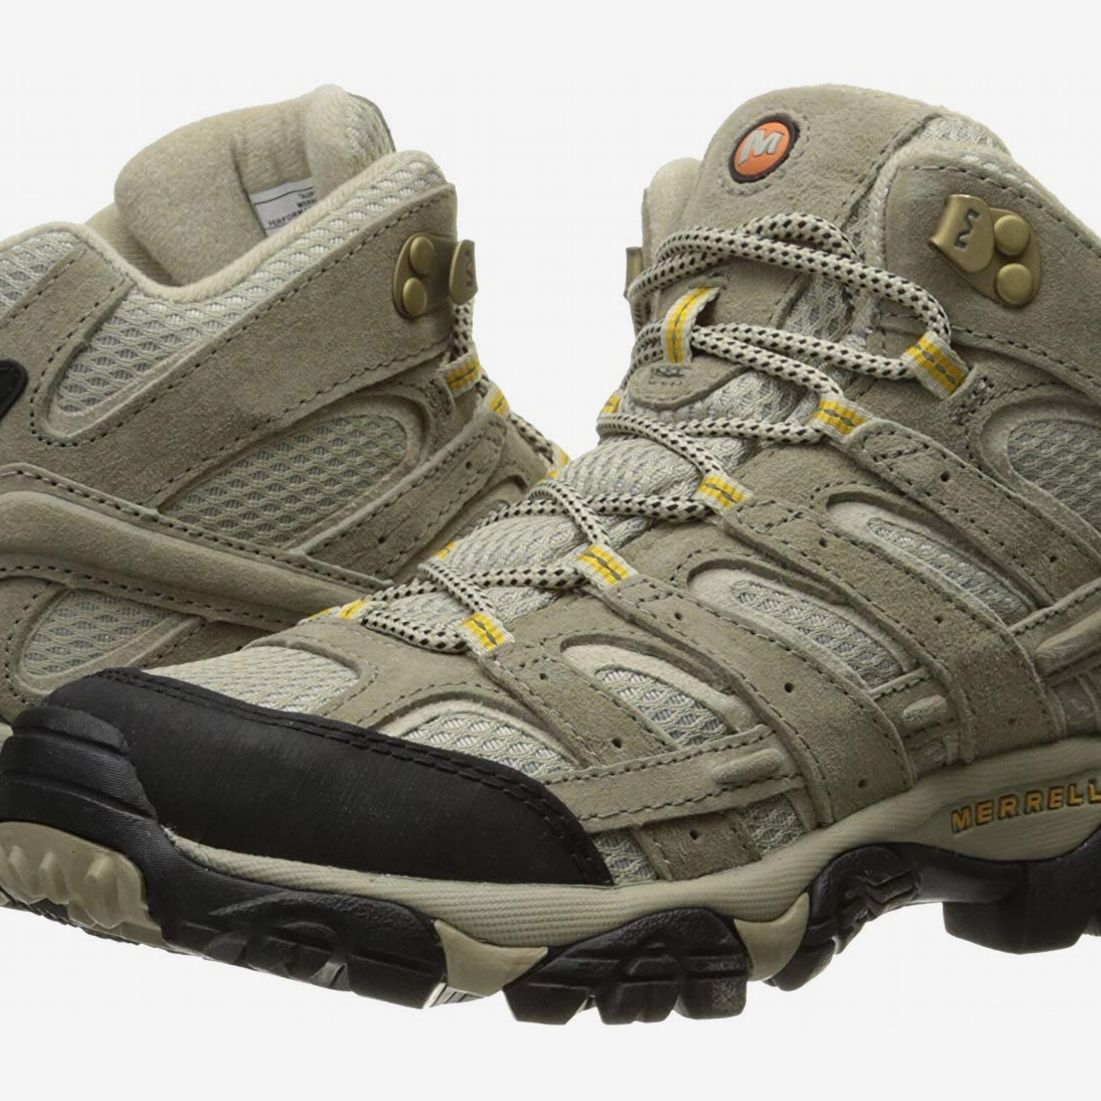 16 Best Women's Hiking Boots 2020   The